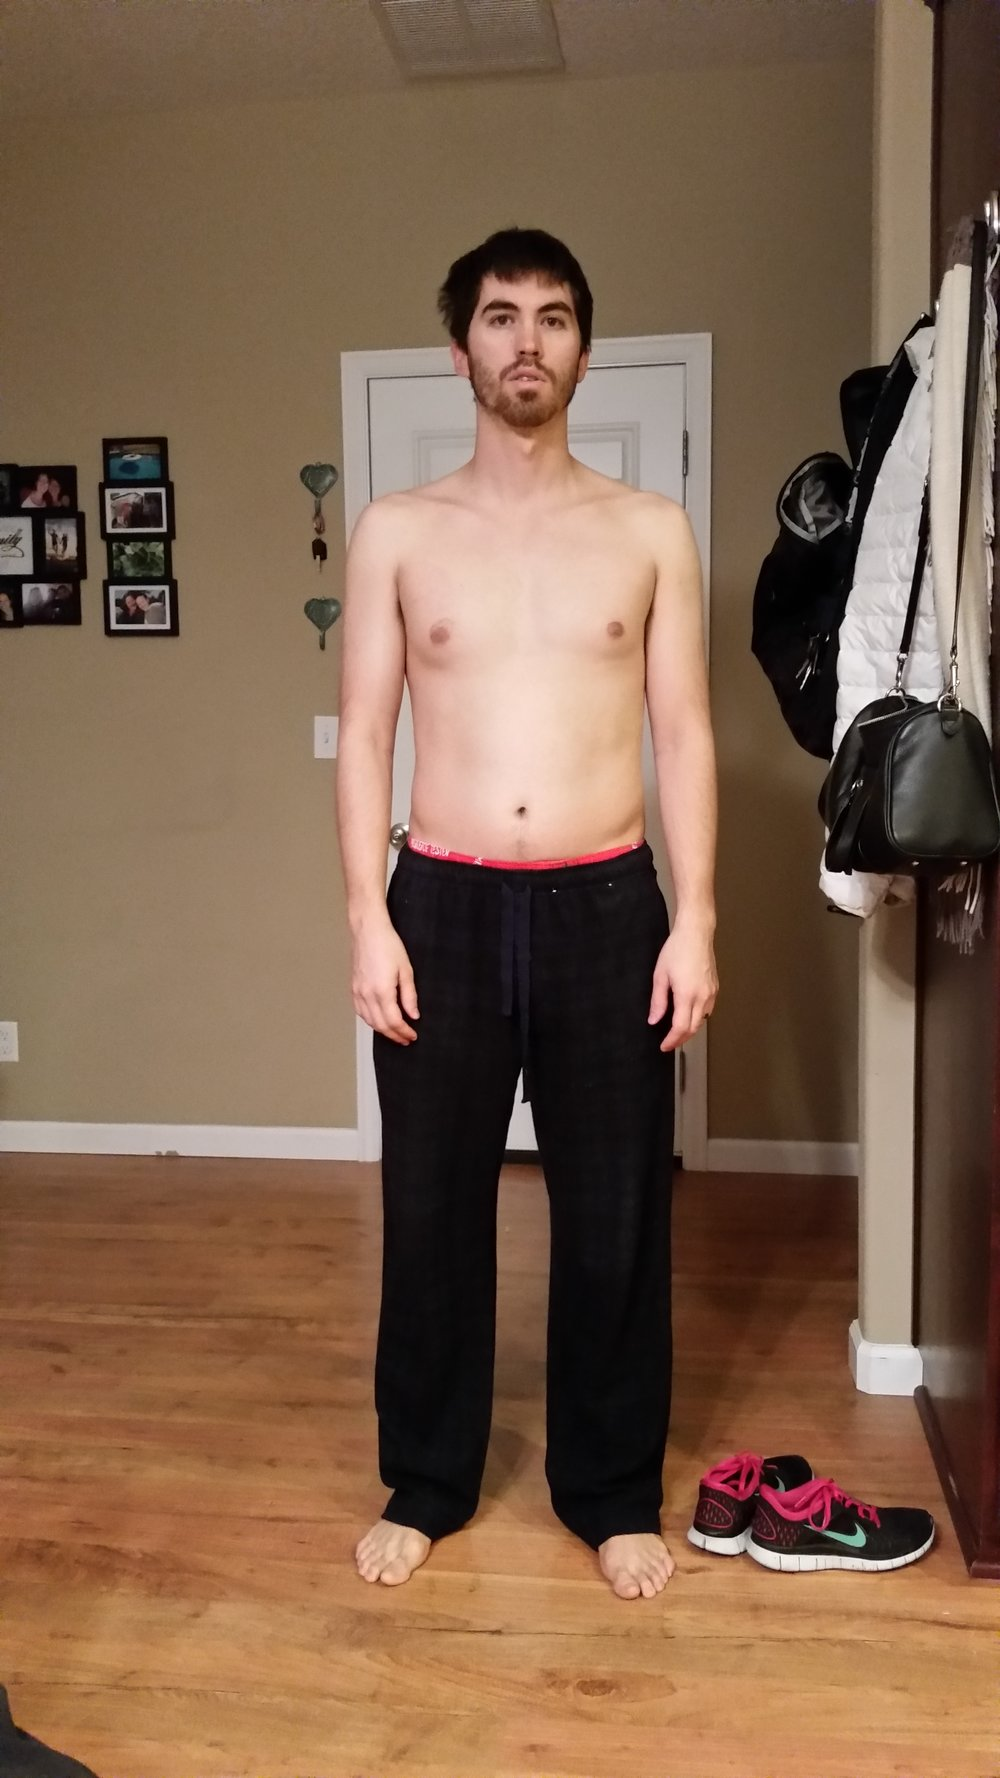 Circa November, 2014. 165 pounds and slowly gaining. Felt awful, low energy, high stress and about 18 percent body fat. Very little muscle tone and far less strength than today.